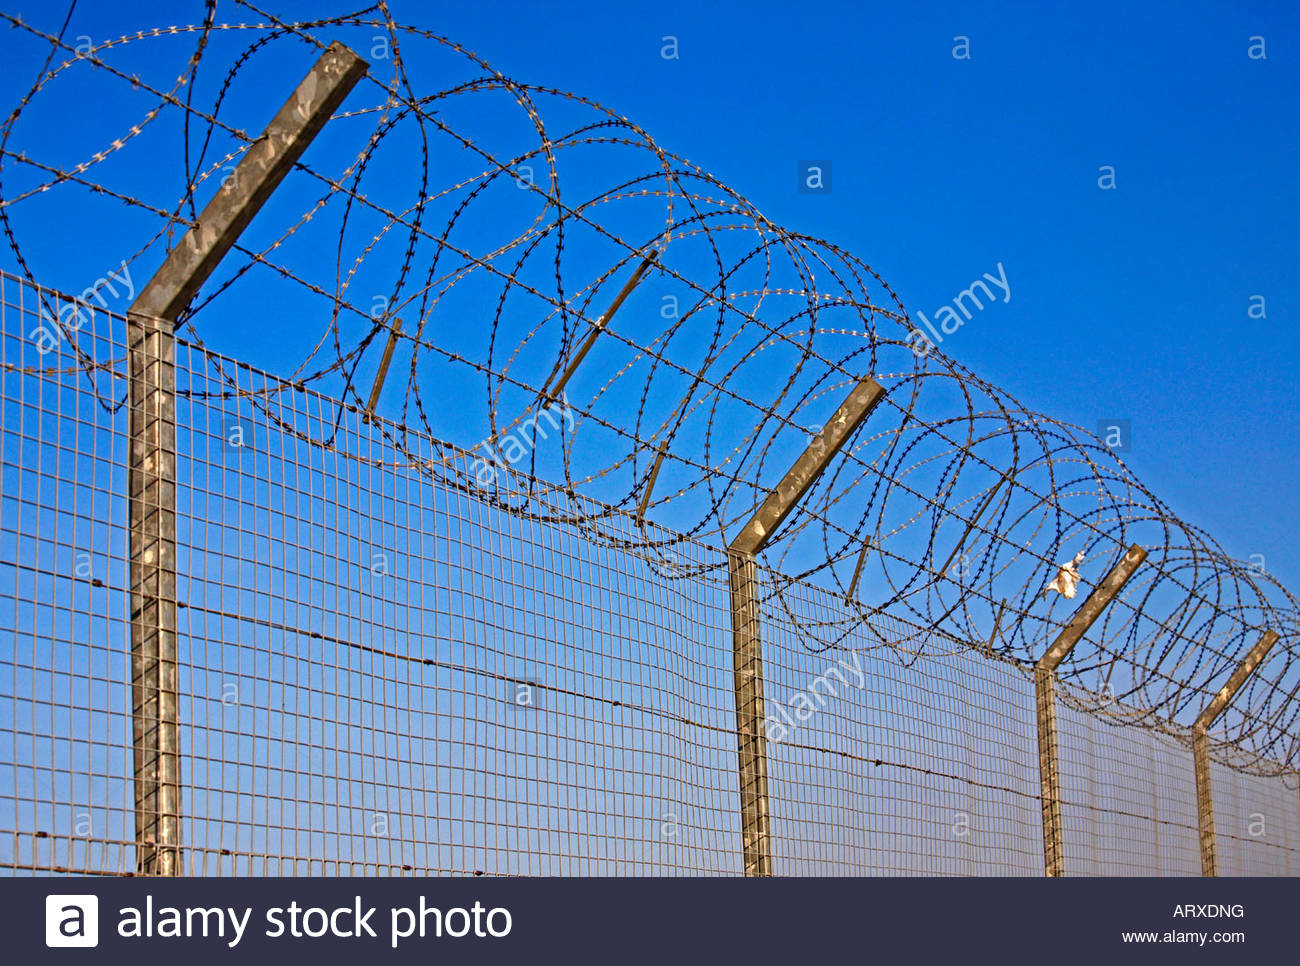 Barbed Tape Fence Stock Photos & Barbed Tape Fence Stock Images - Alamy